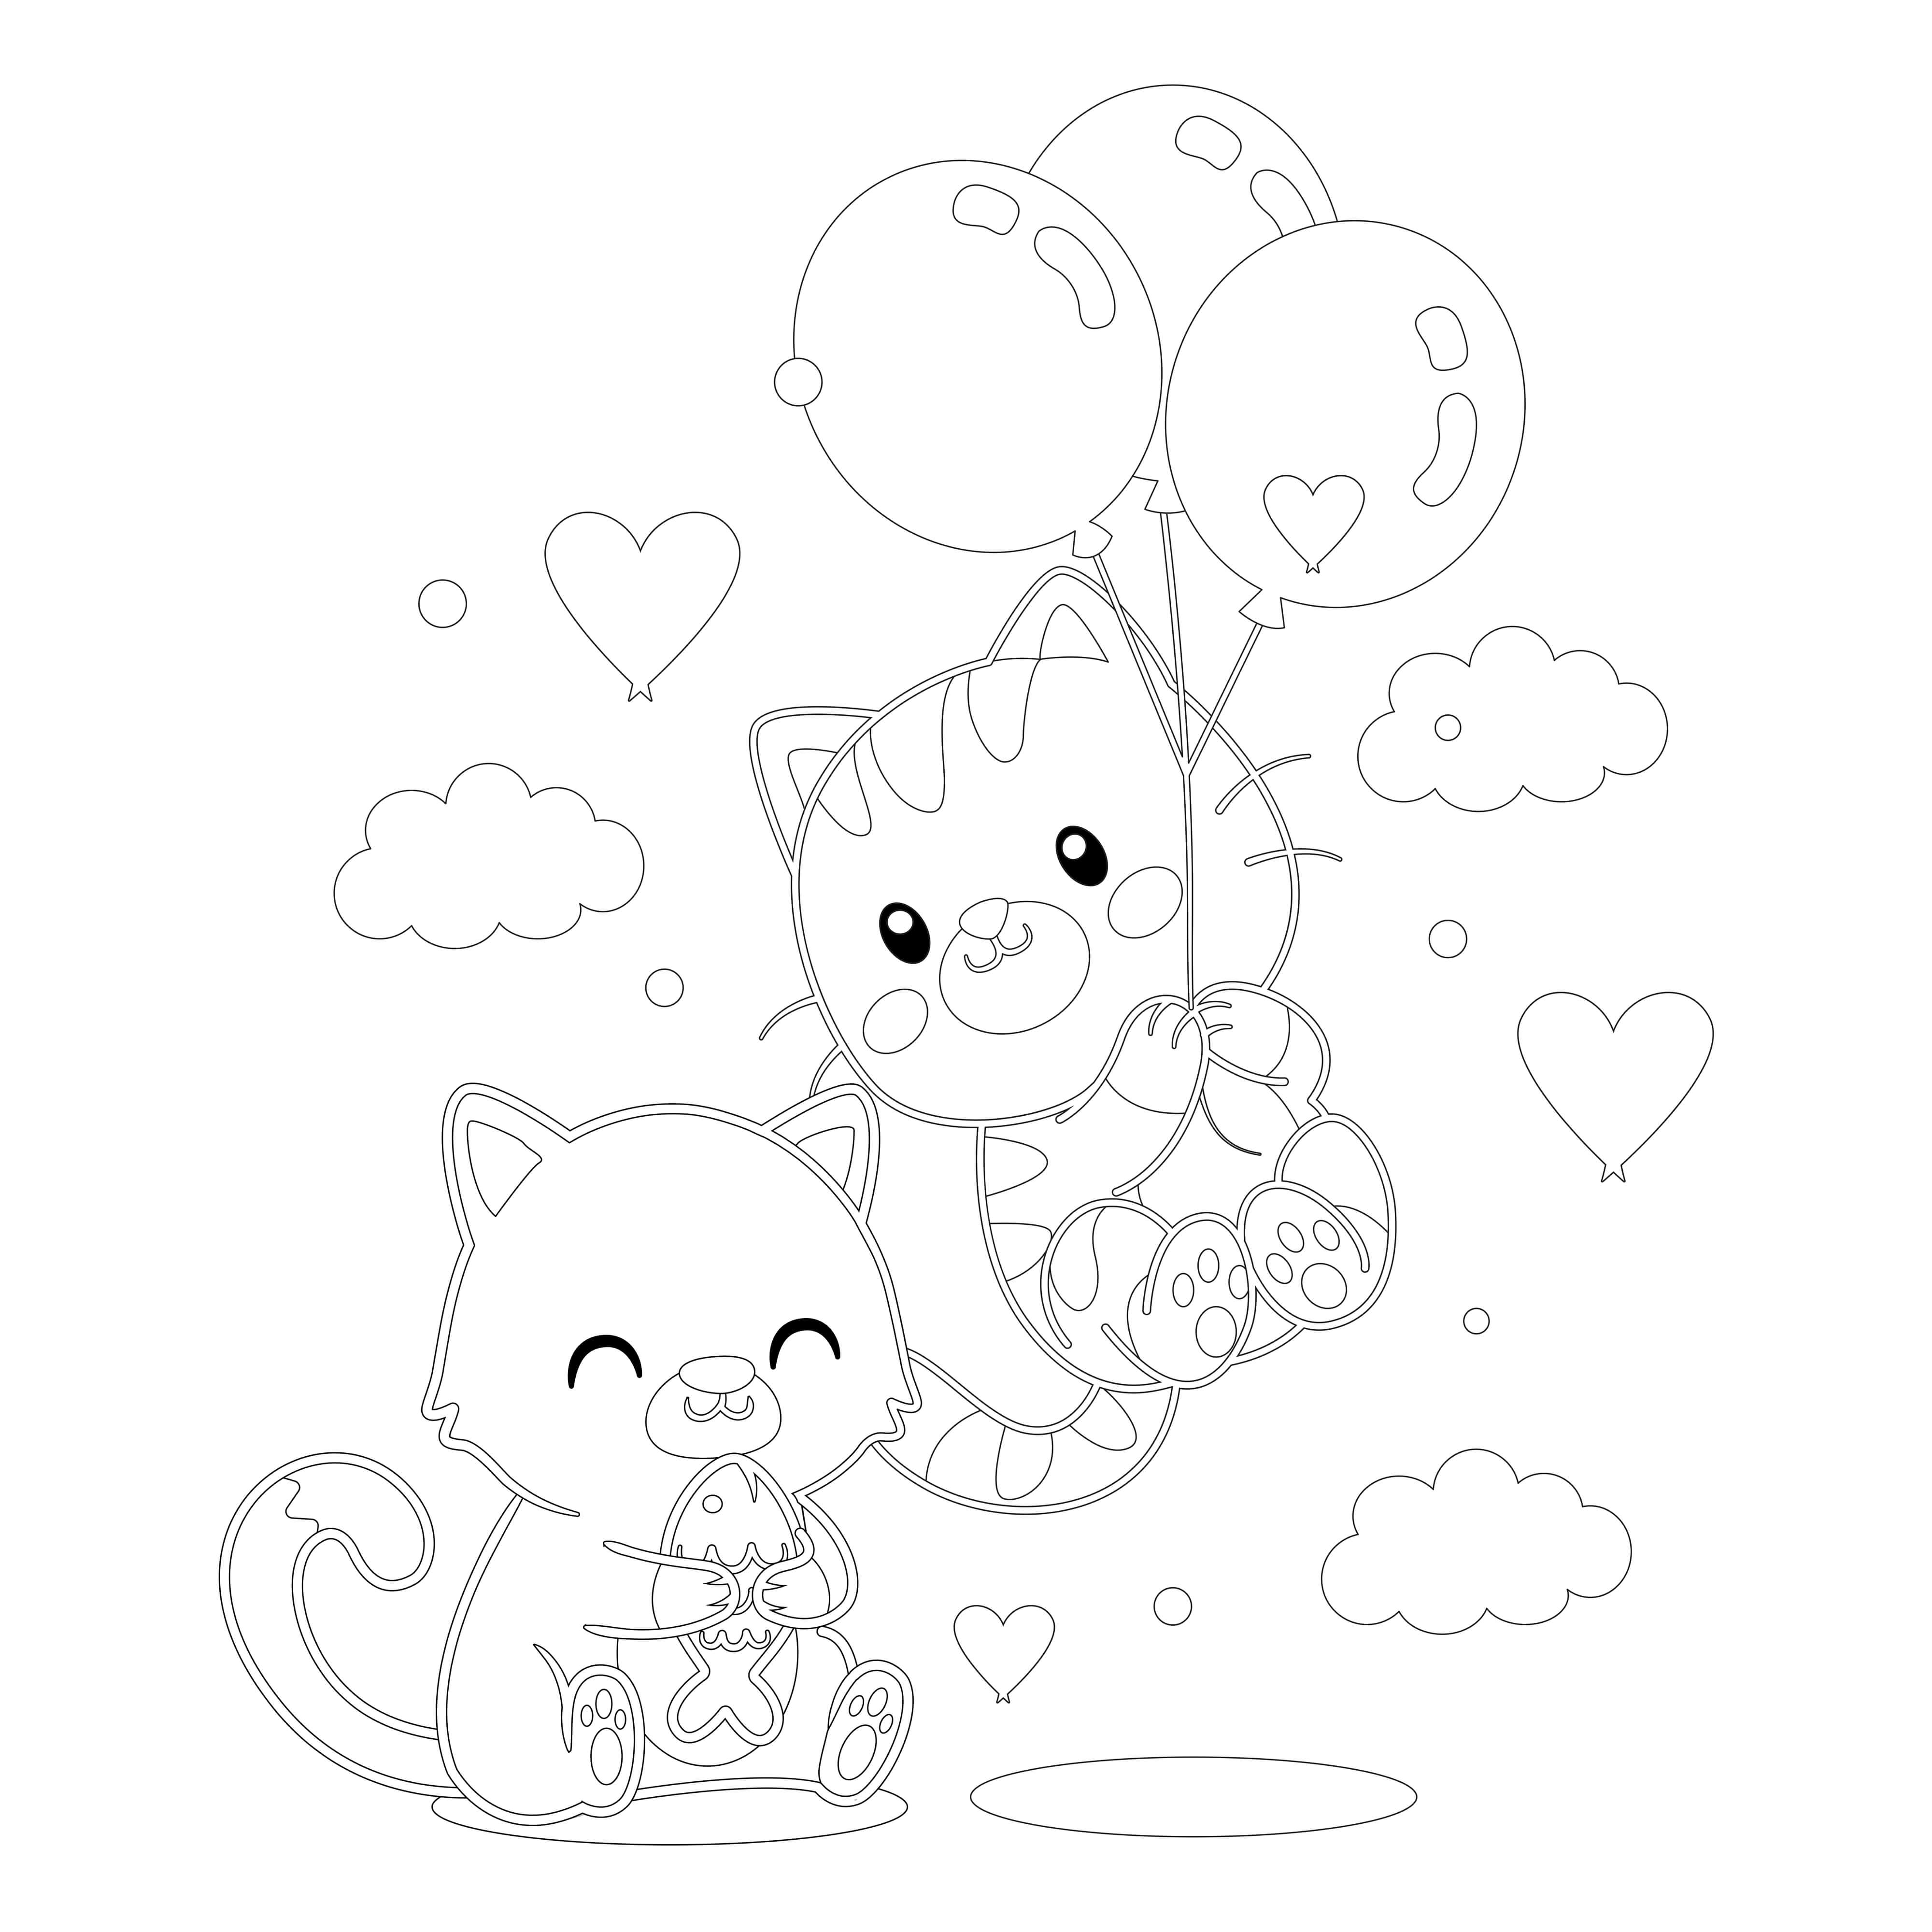 Balloon Adventure coloring pages for adults